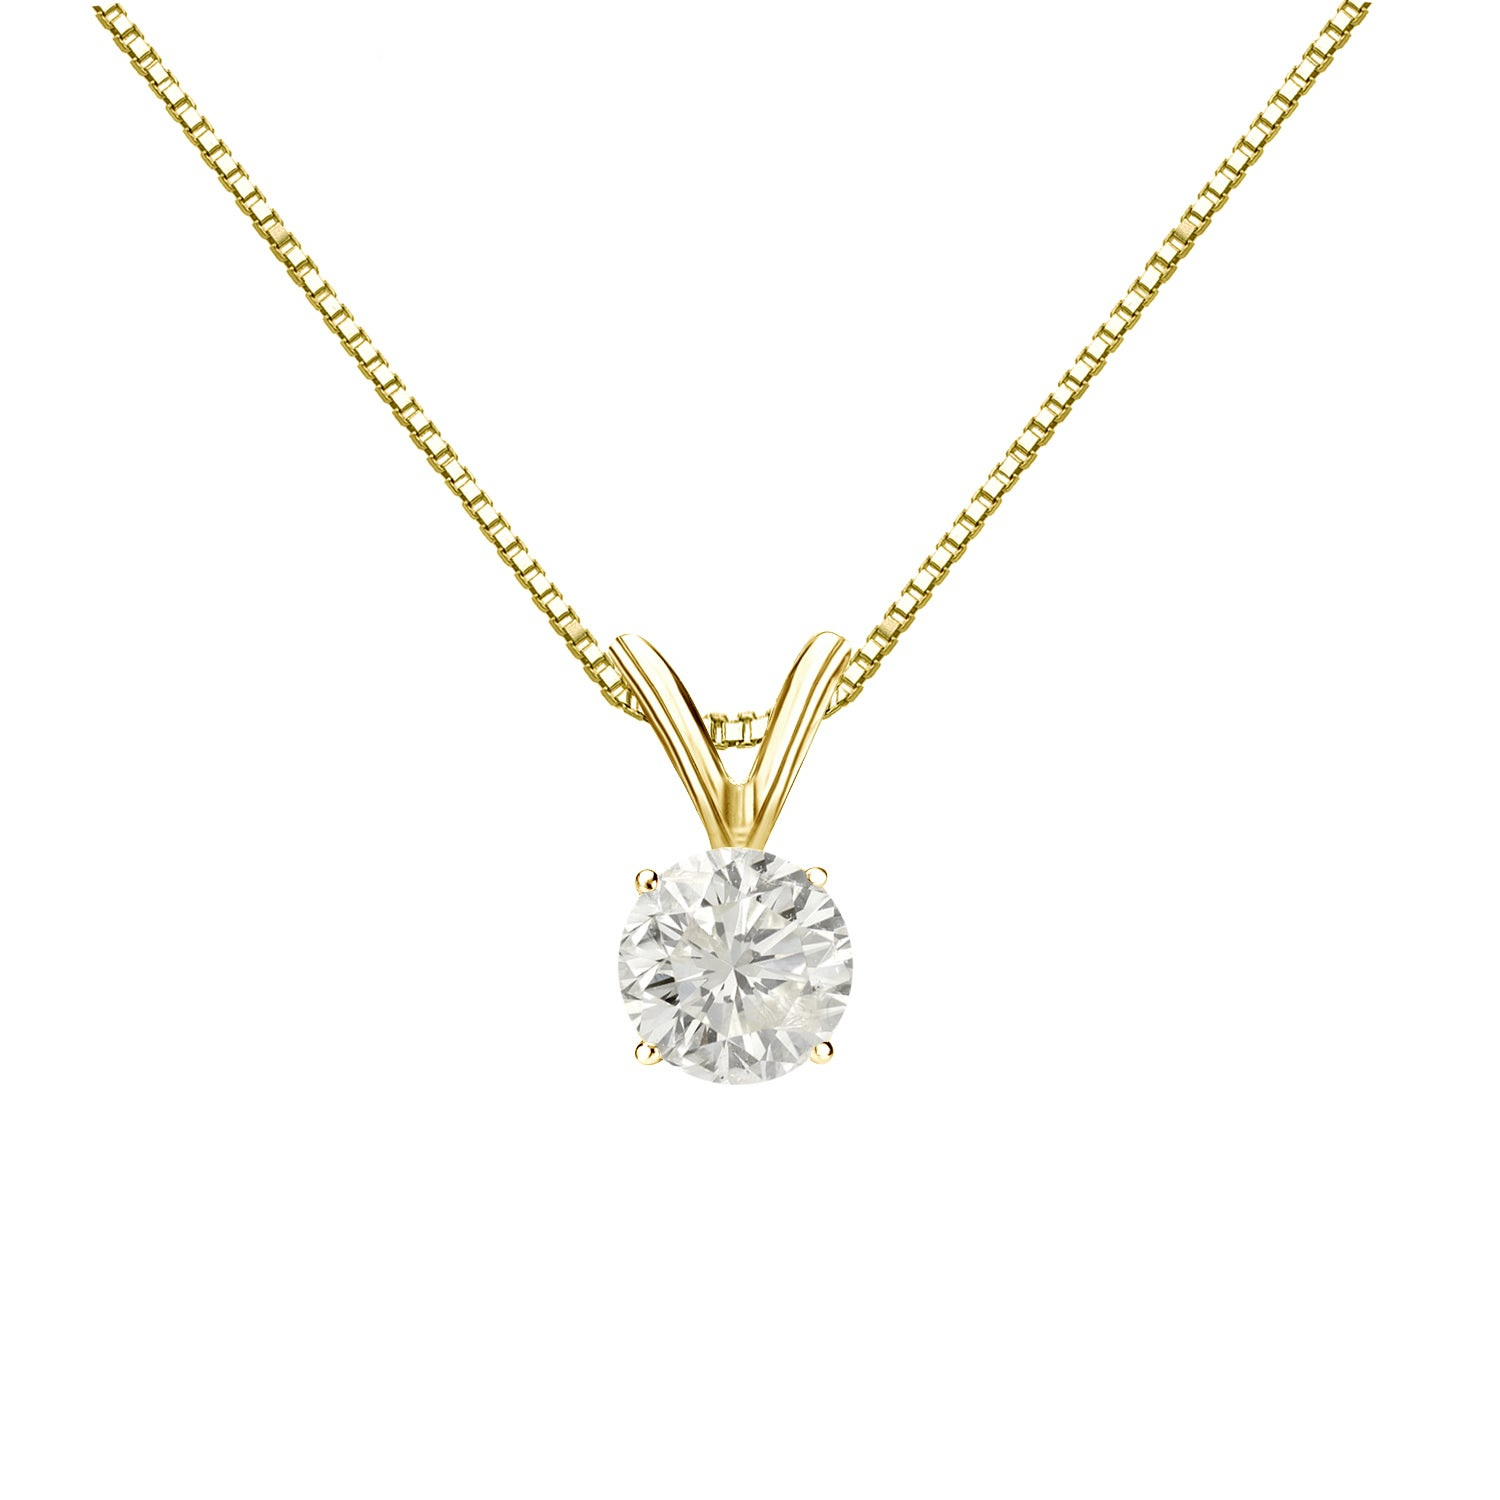 two cut tone gold chain charm real solitaire marquise pendant necklace pnd twisted round swirl white diamond